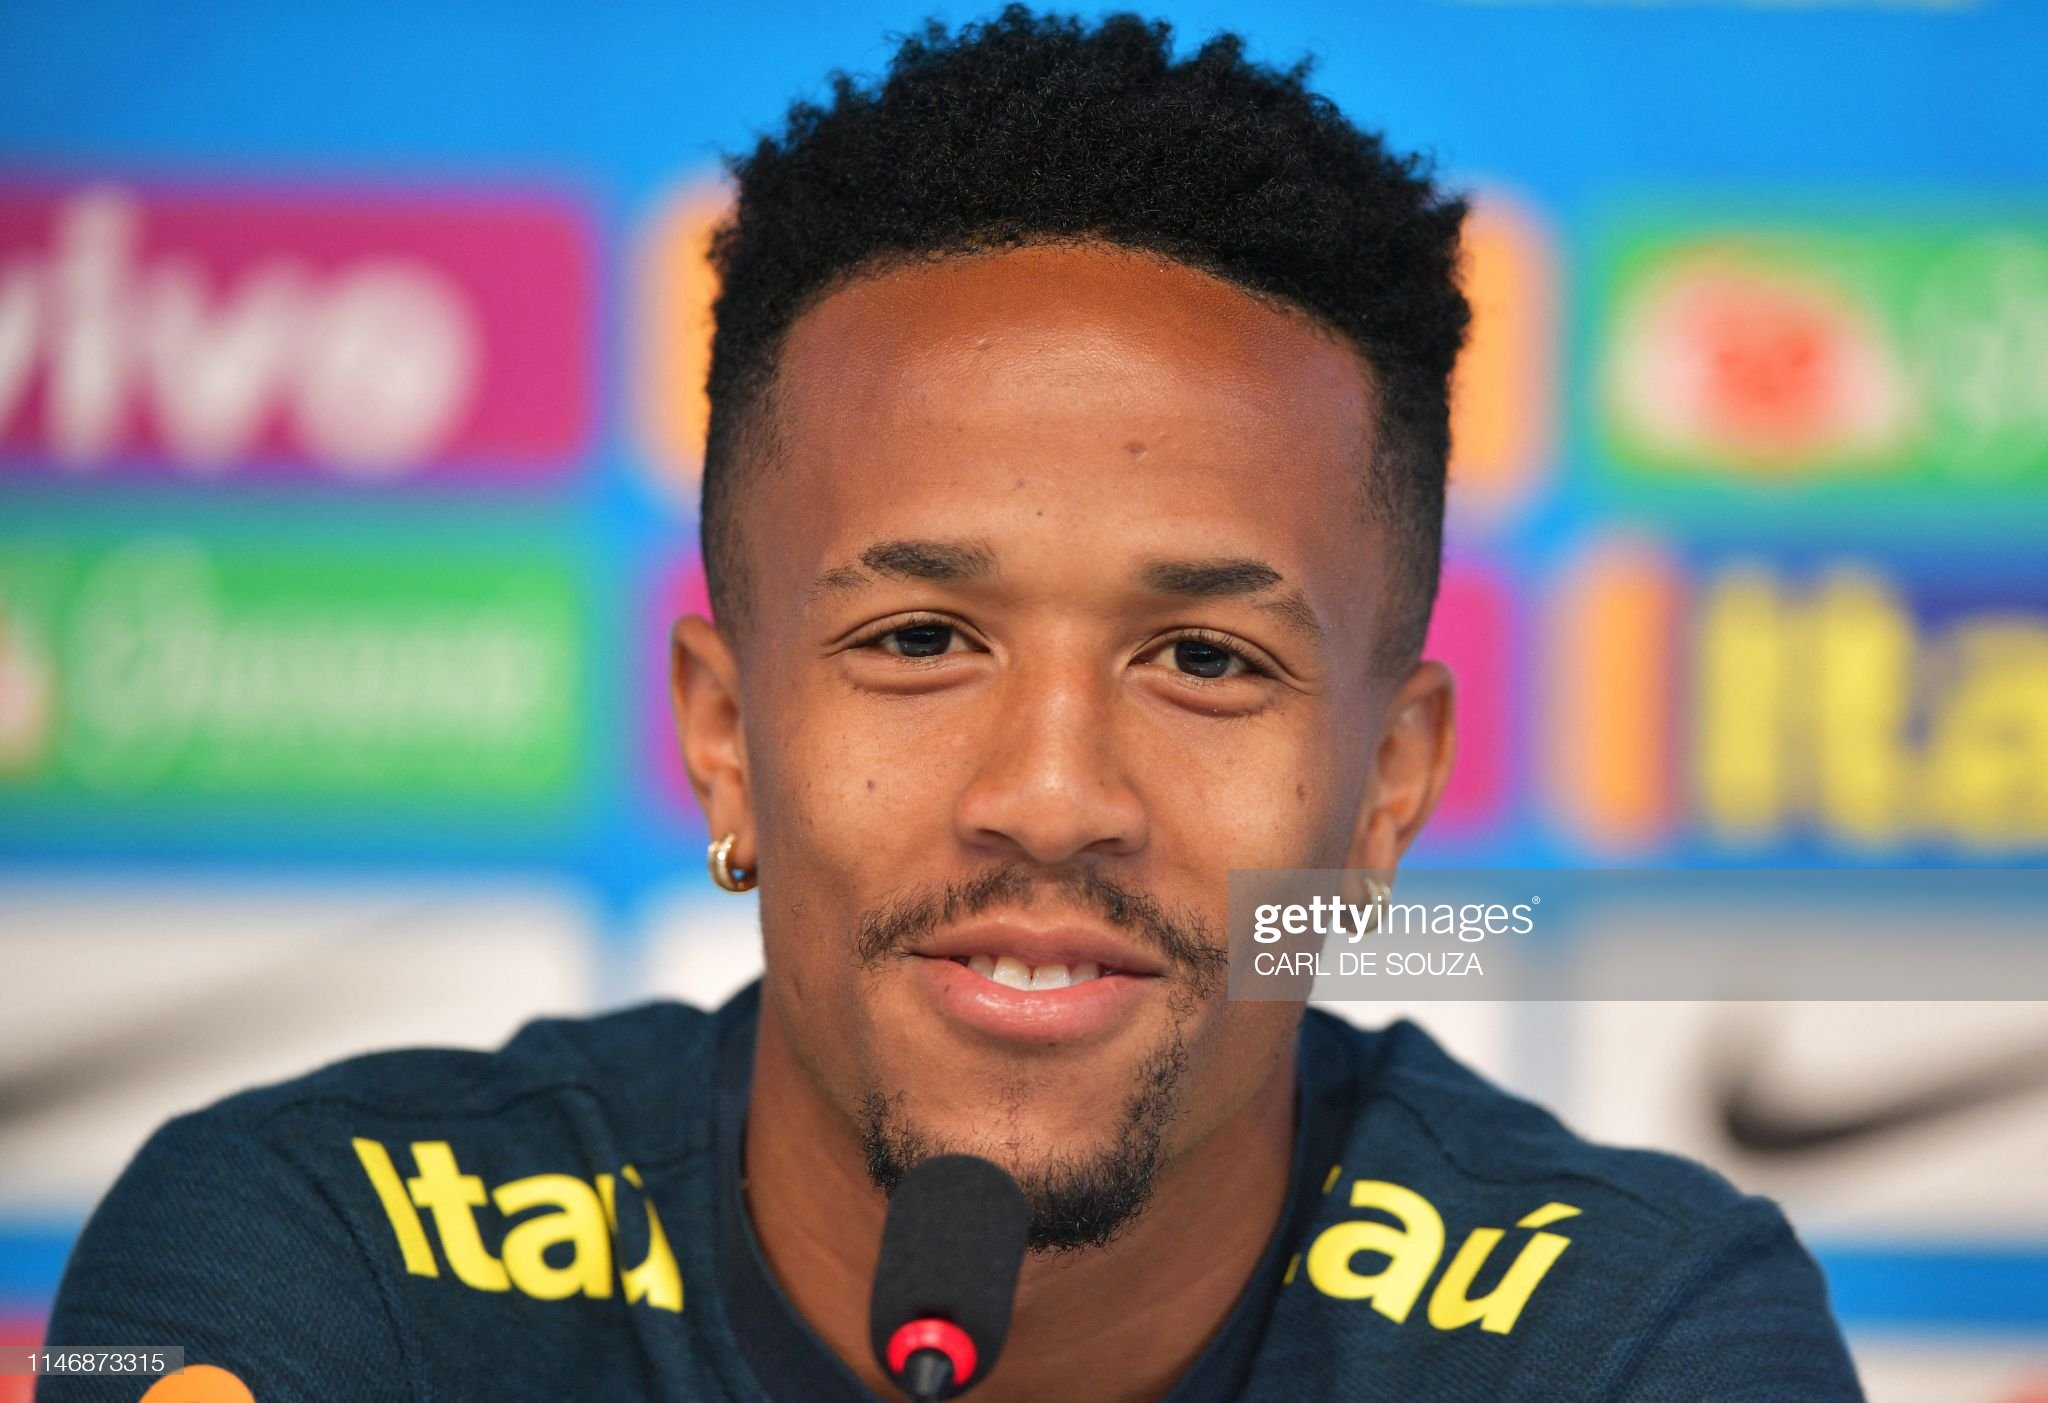 ¿Cuánto mide Eder Militao? - Real height Brazilian-national-football-player-eder-militao-speaks-during-a-press-picture-id1146873315?s=2048x2048